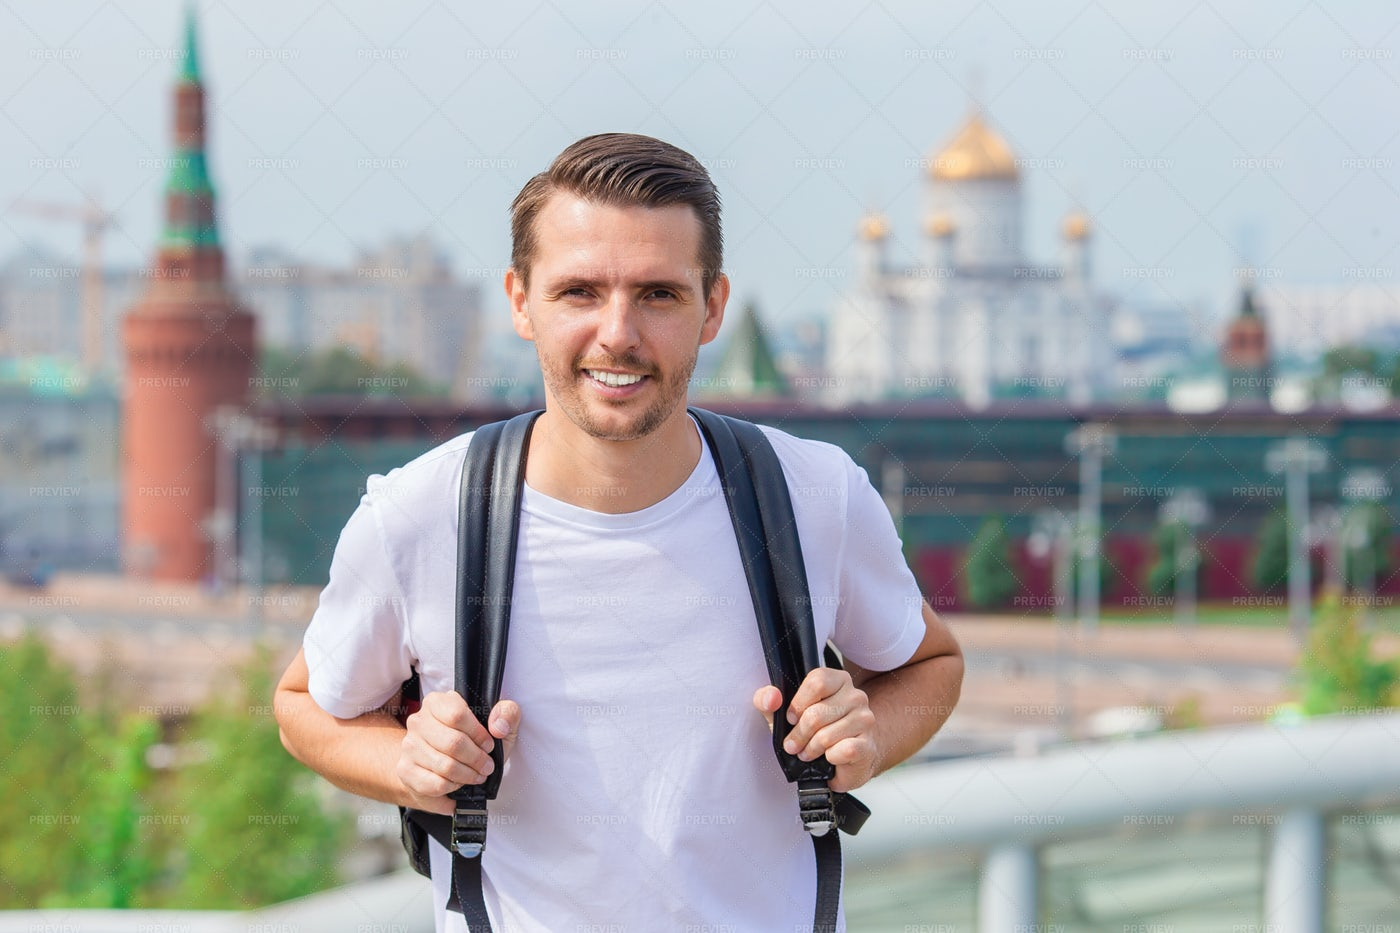 Tourist Guy Smiling In A Big City: Stock Photos